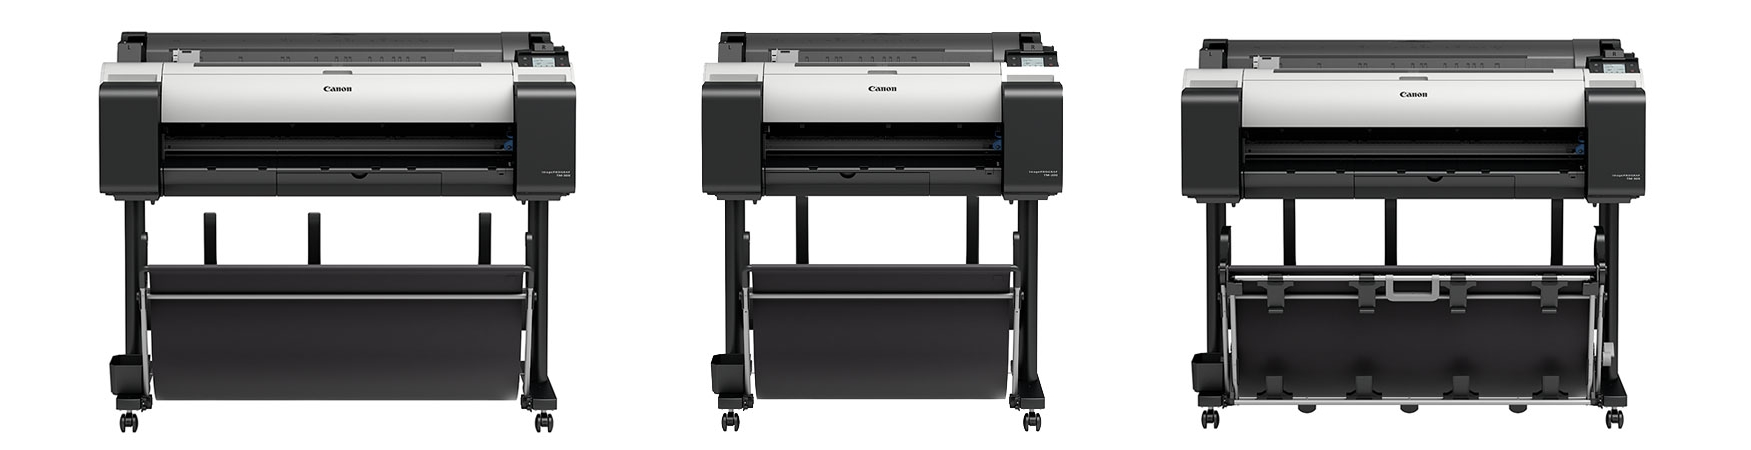 Canon TM Series Plotter Printer